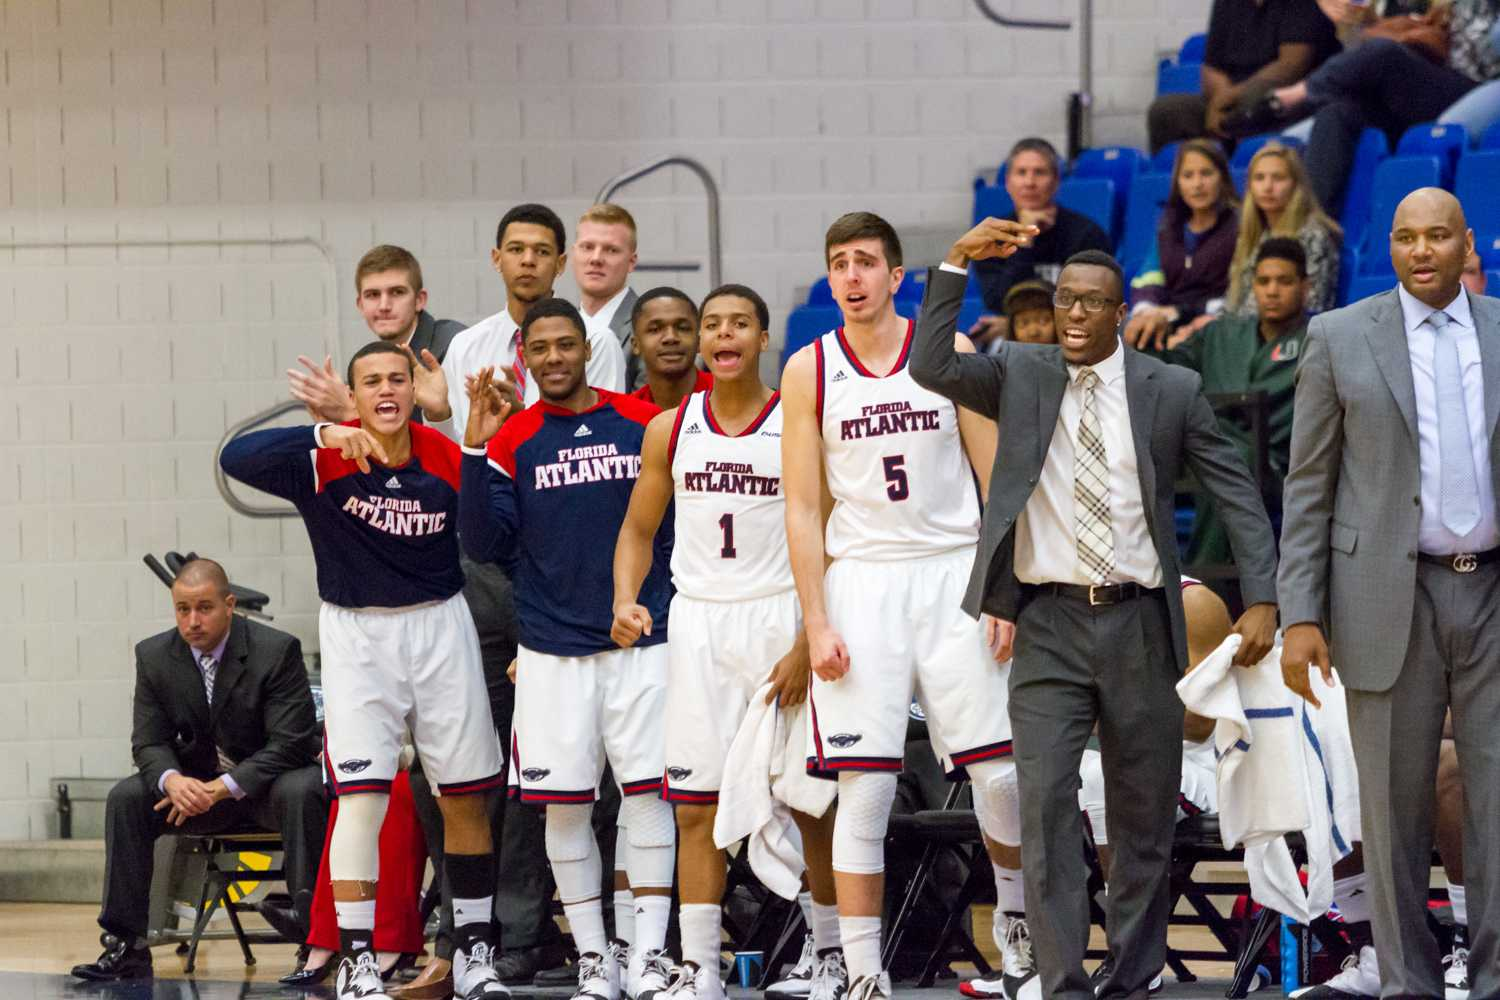 Members of the FAU basketball team celebrate after a made 3-point field goal in the first half. The team hit seven of its 16 3-point attempts in the game.